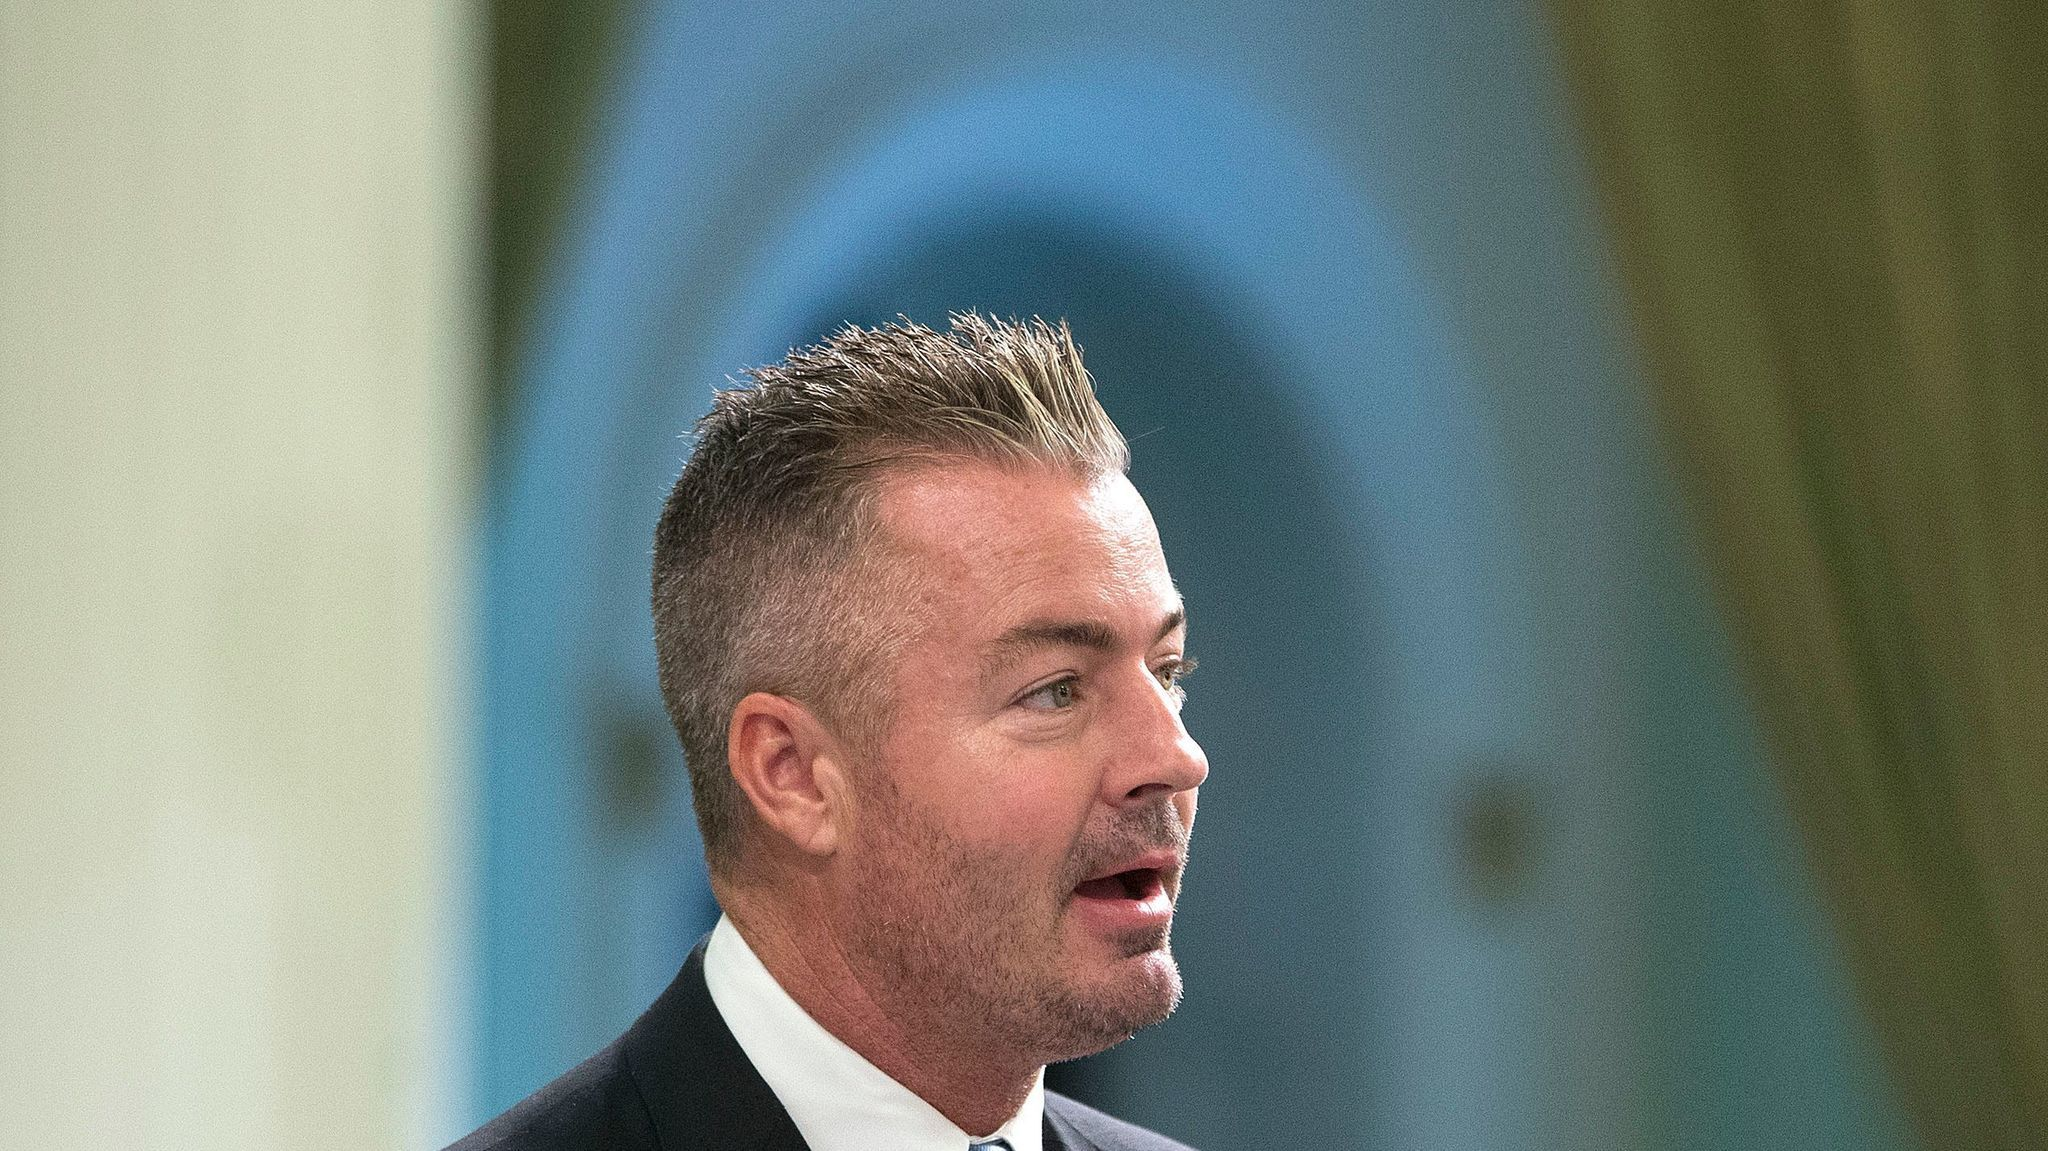 Assemblyman Travis Allen (R-Huntington Beach) wants to repeal a law that increases the state gas tax. (Rich Pedroncelli / Associated Press)